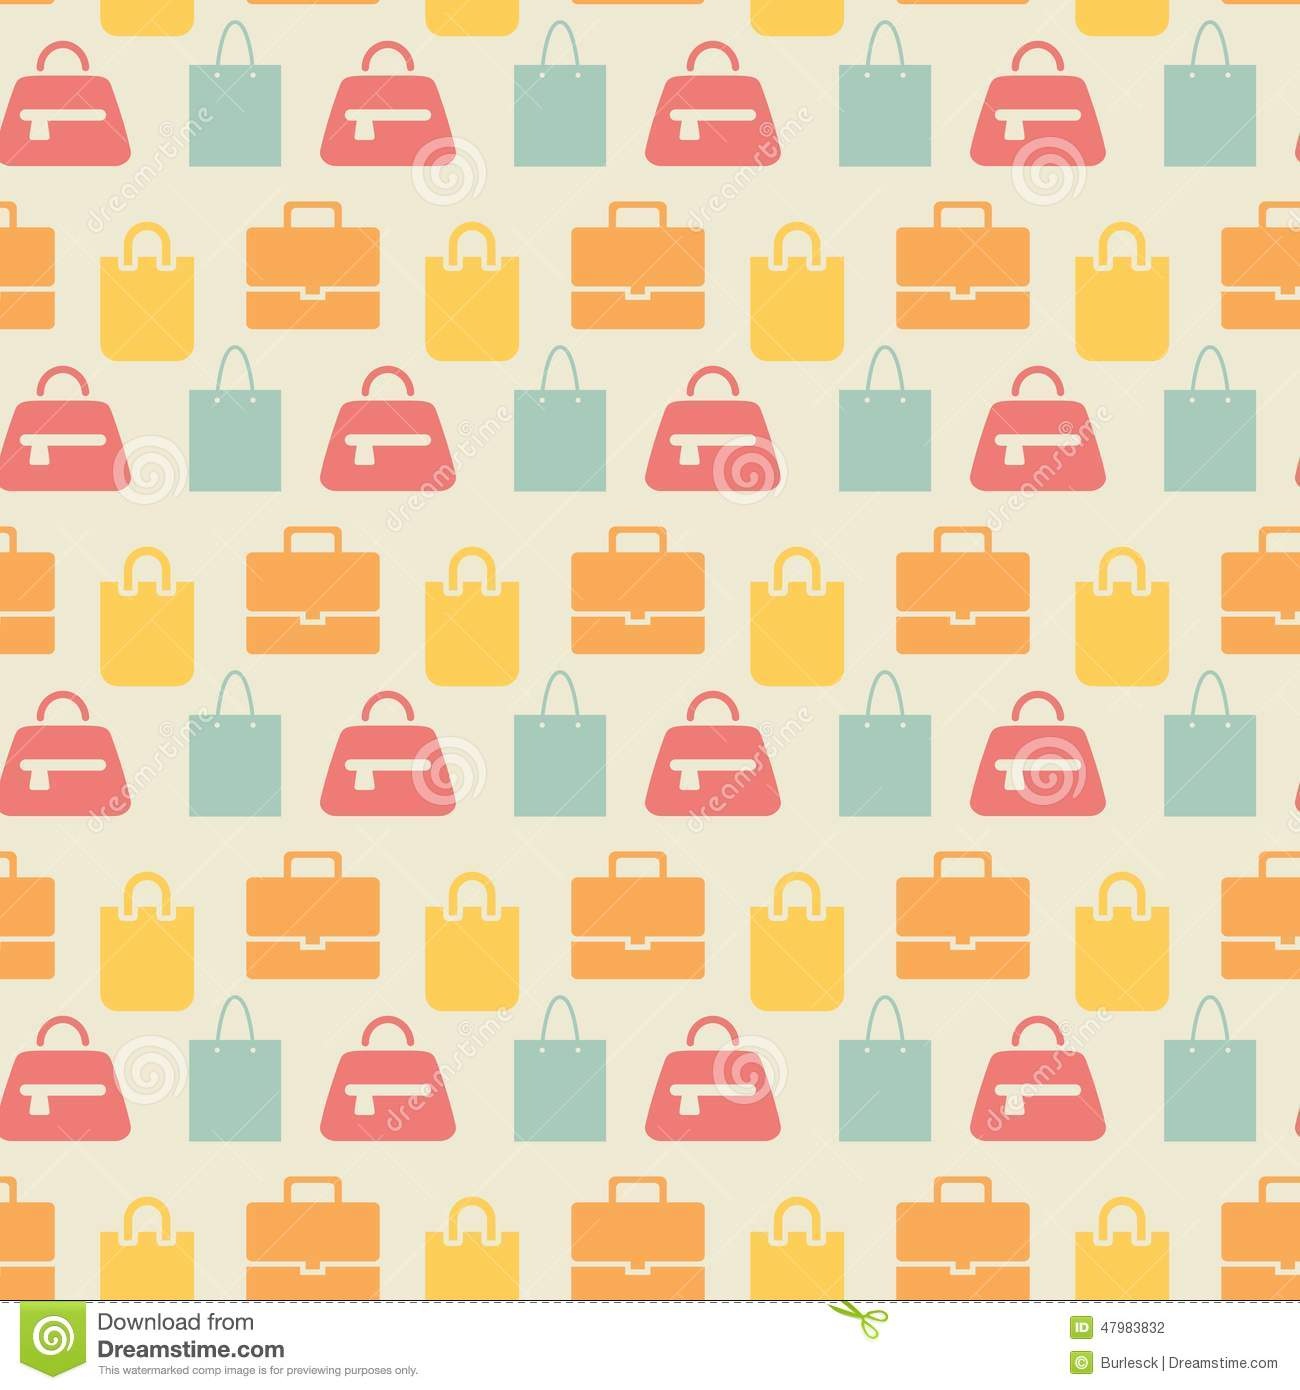 Sale Background With Shopping Bags Seamless Stock Image - Image ...